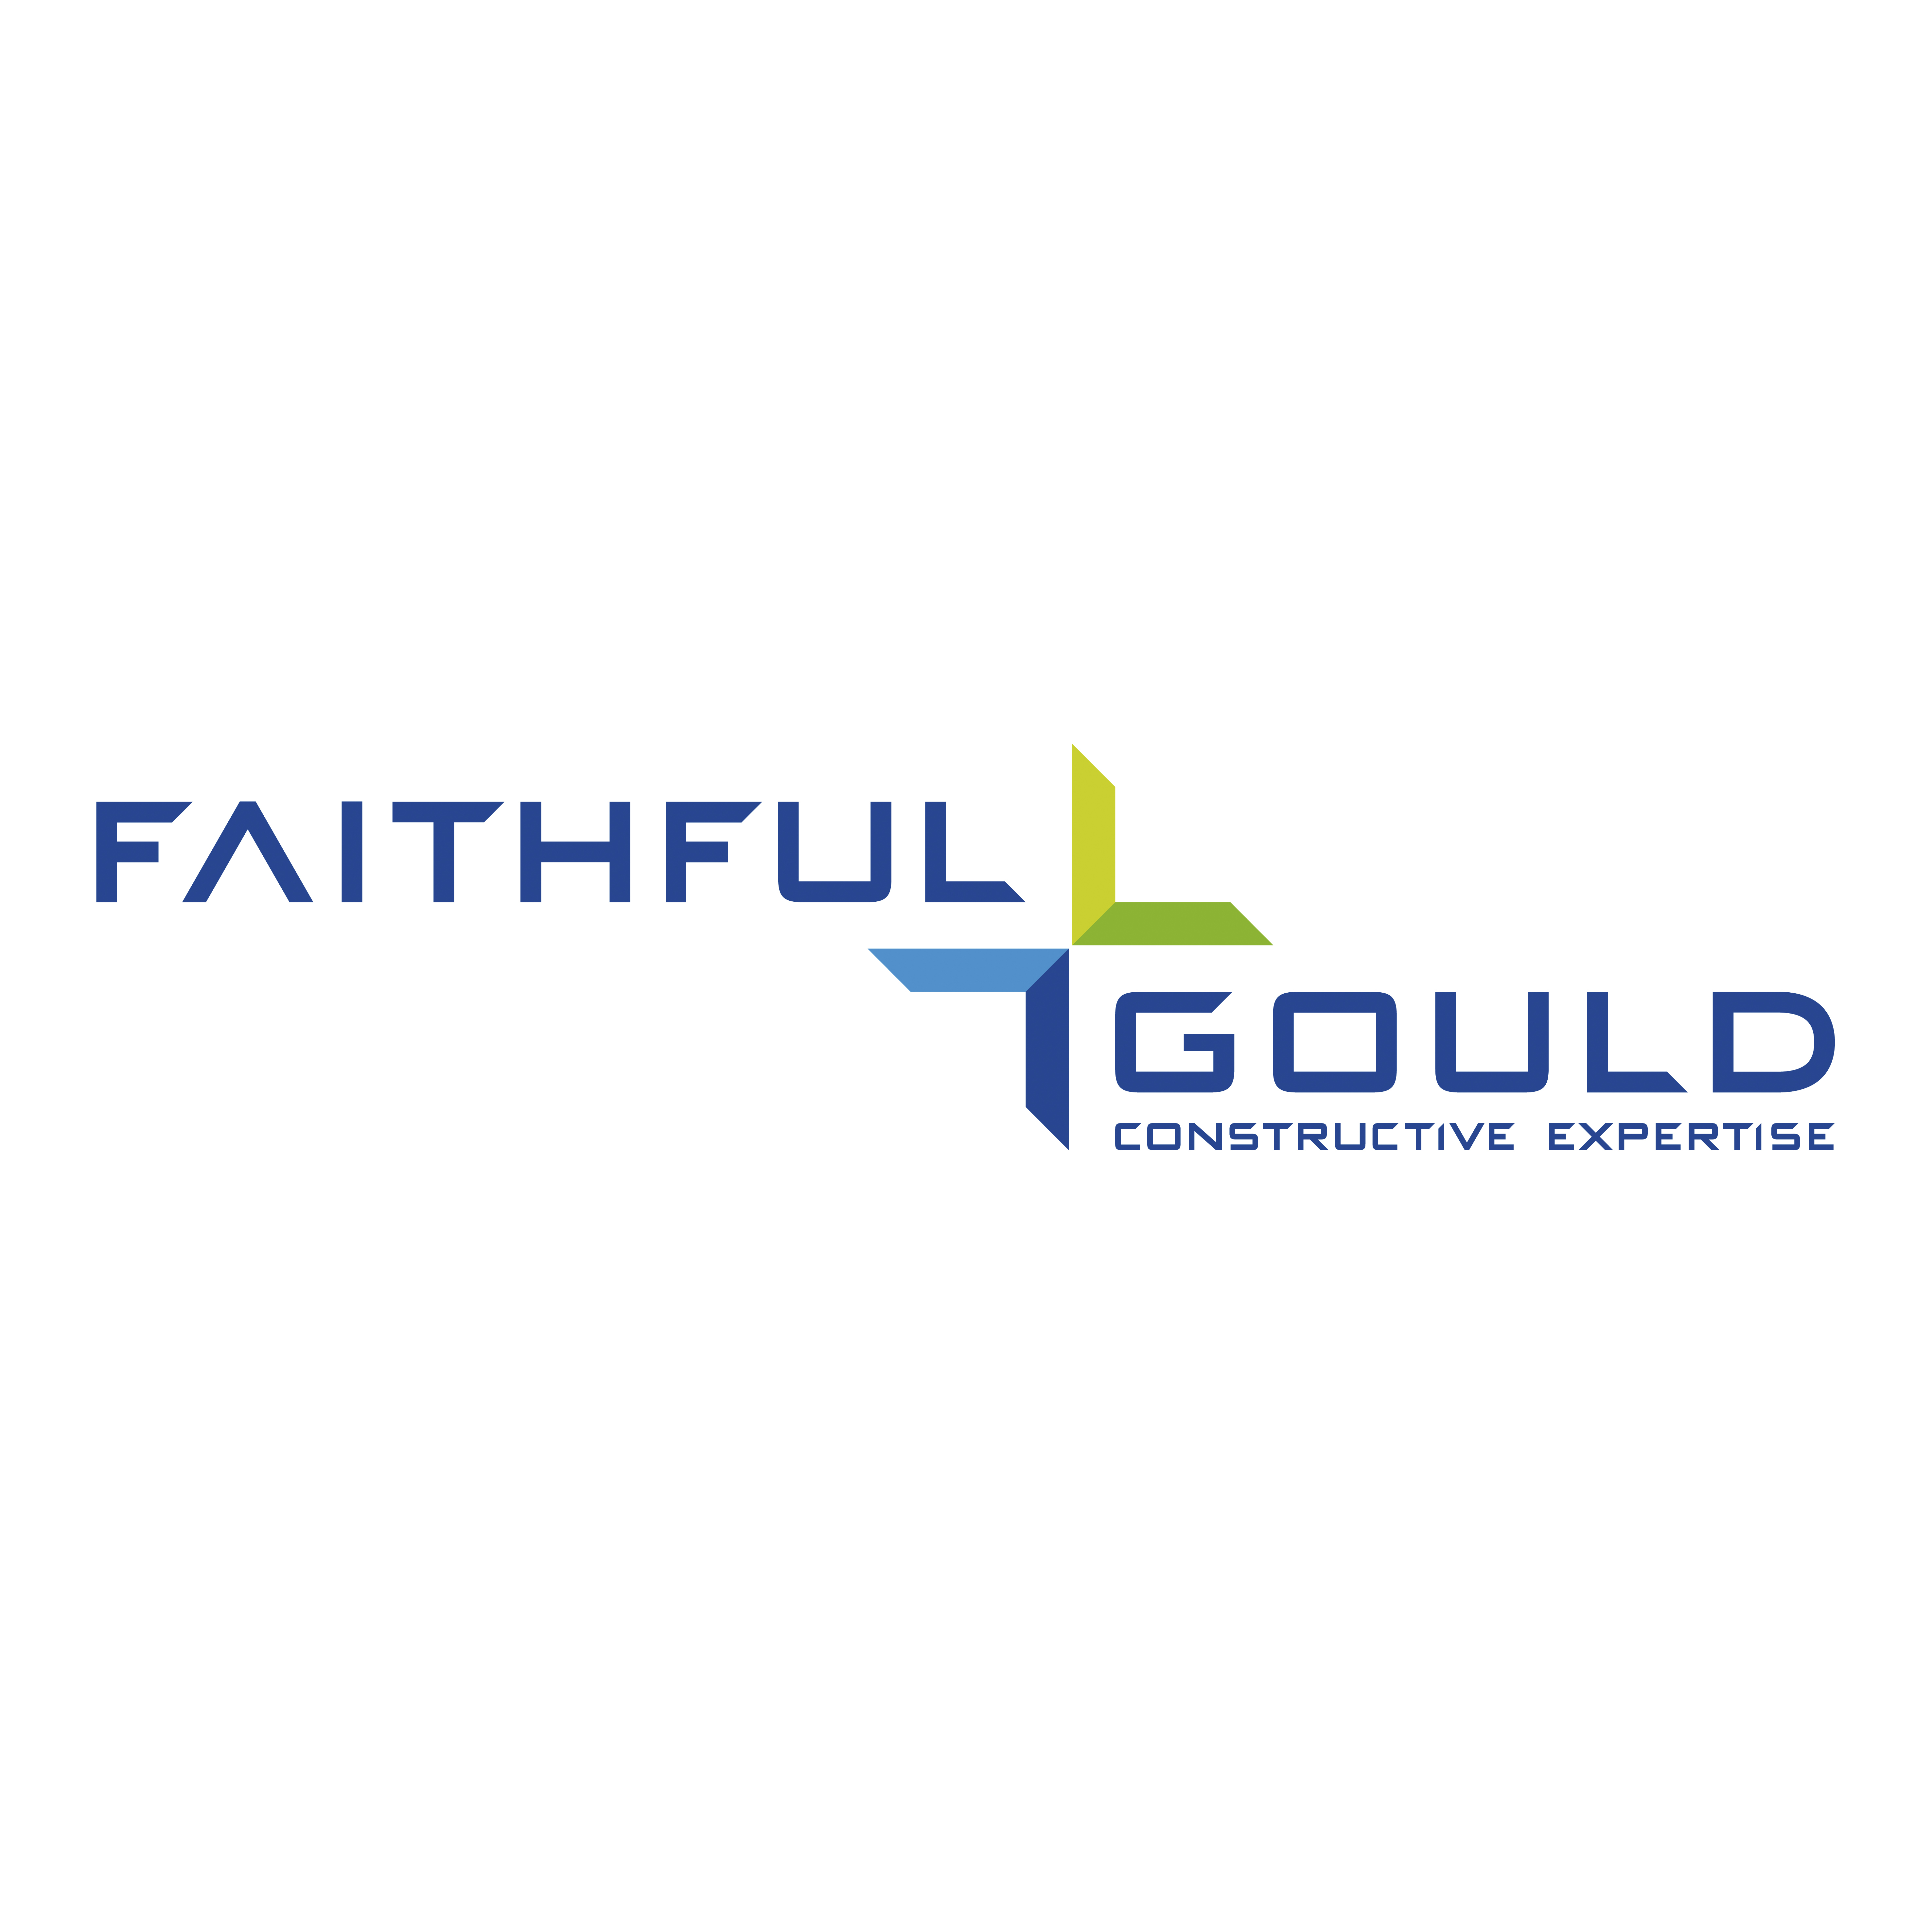 Faithful_Gould copy